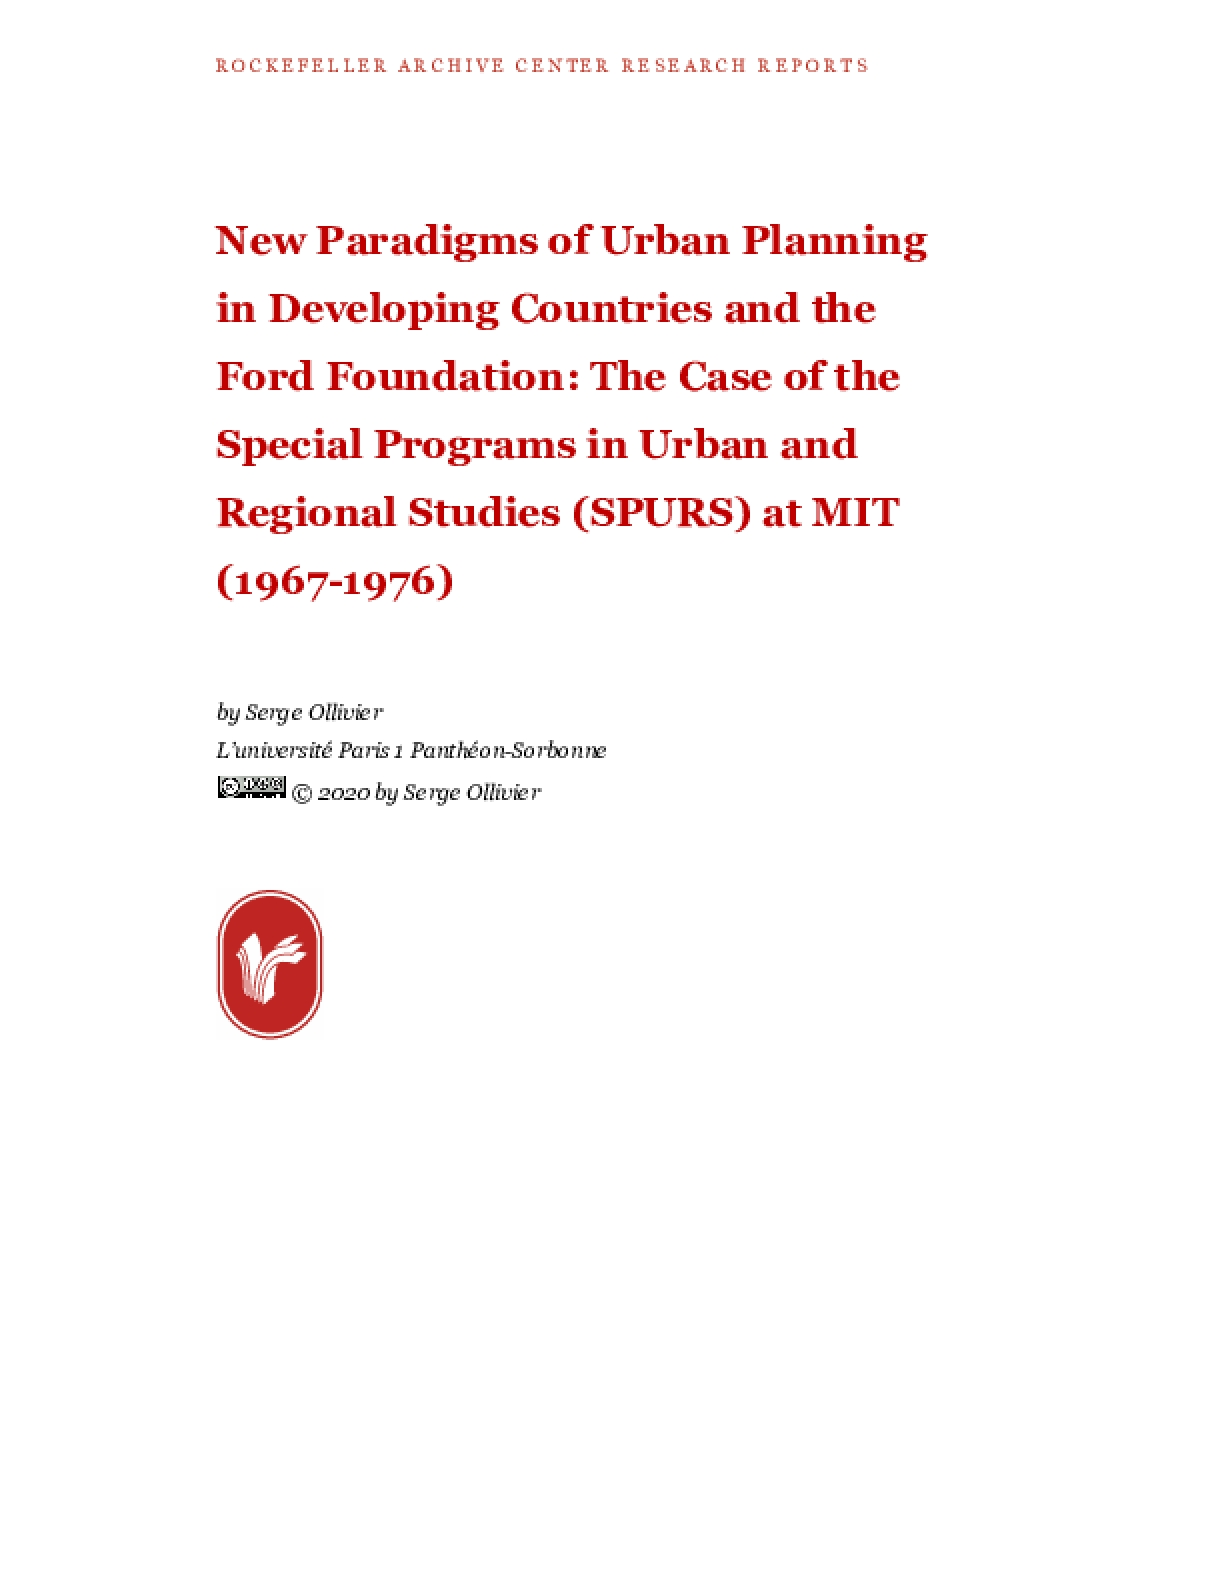 New Paradigms of Urban Planning in Developing Countries and the Ford Foundation: The Case of the Special Programs in Urban and Regional Studies (SPURS) at MIT (1967-1976)